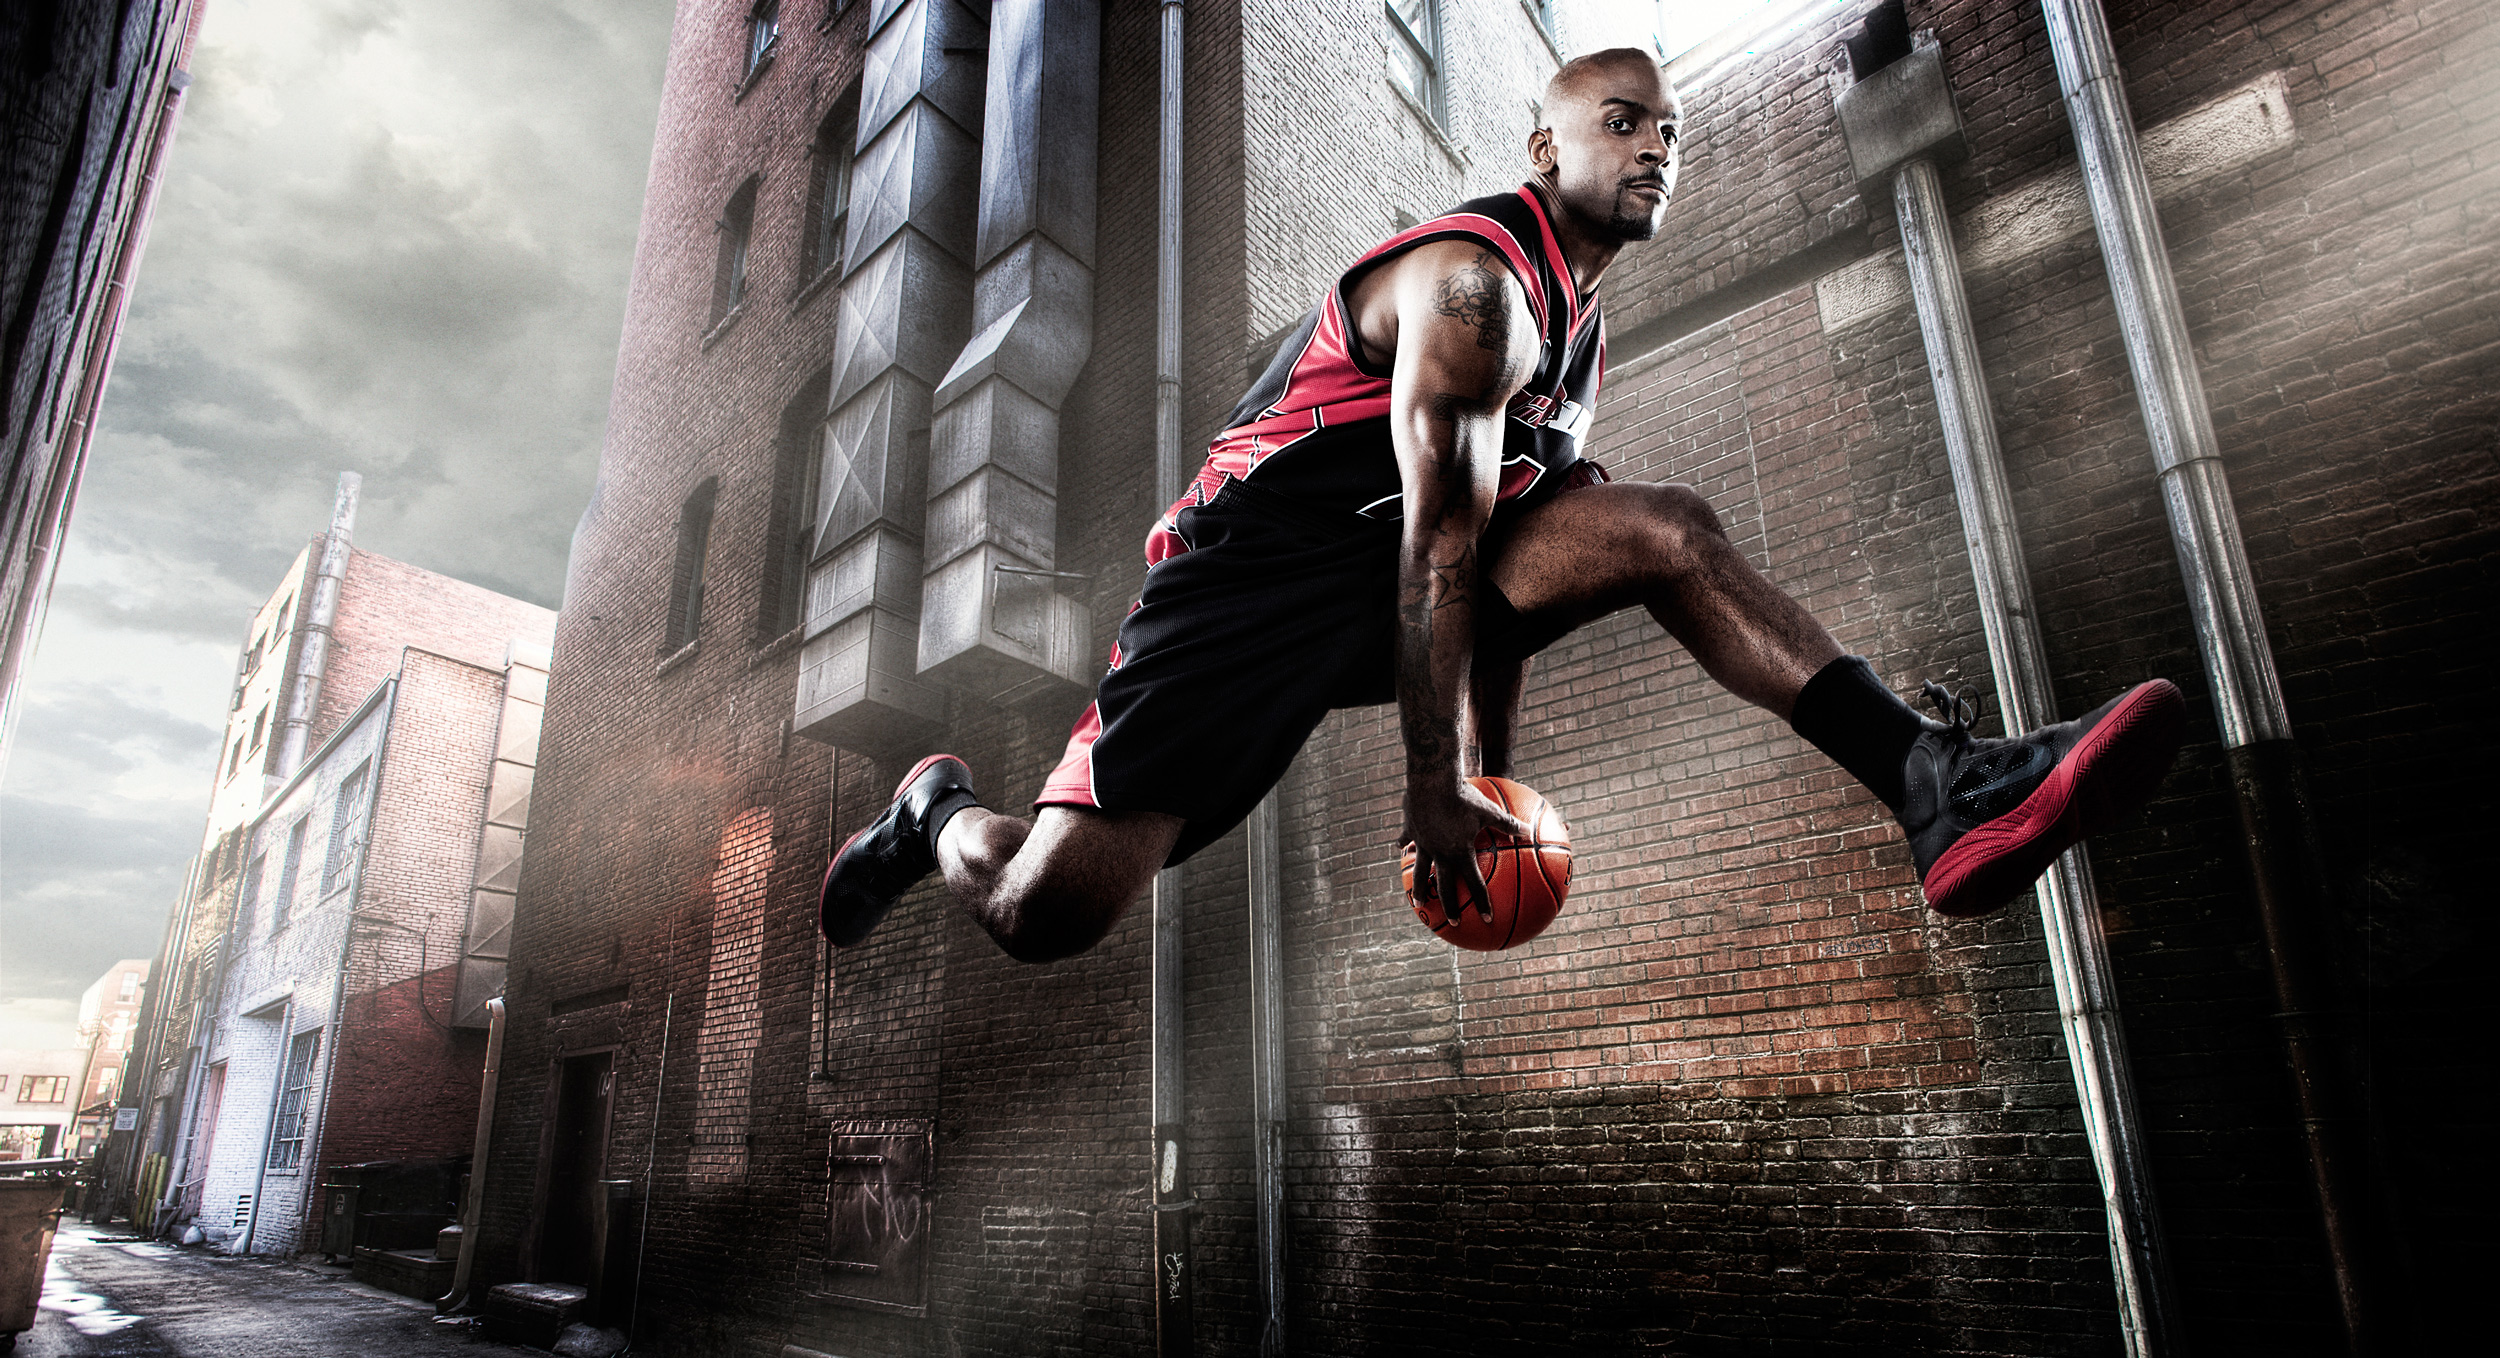 Basketball player jumping | Dovis Bird Agency Photography